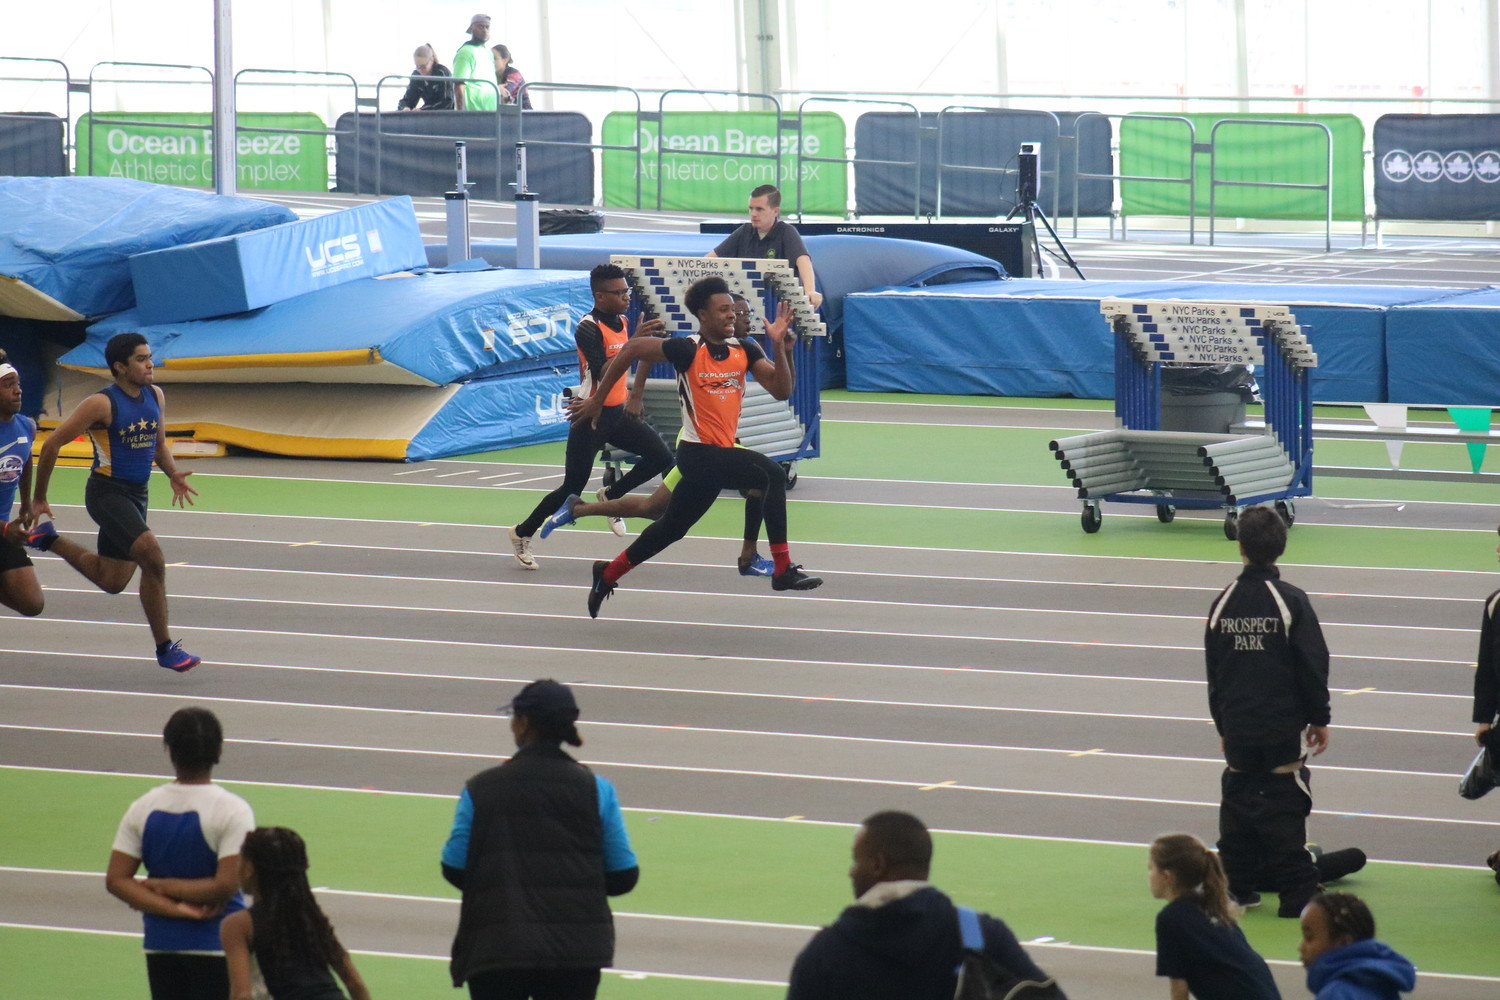 Two runners from Explosion Track Club, Andrew Decoteau and Julian Desrosiers, competing at a recent meet.